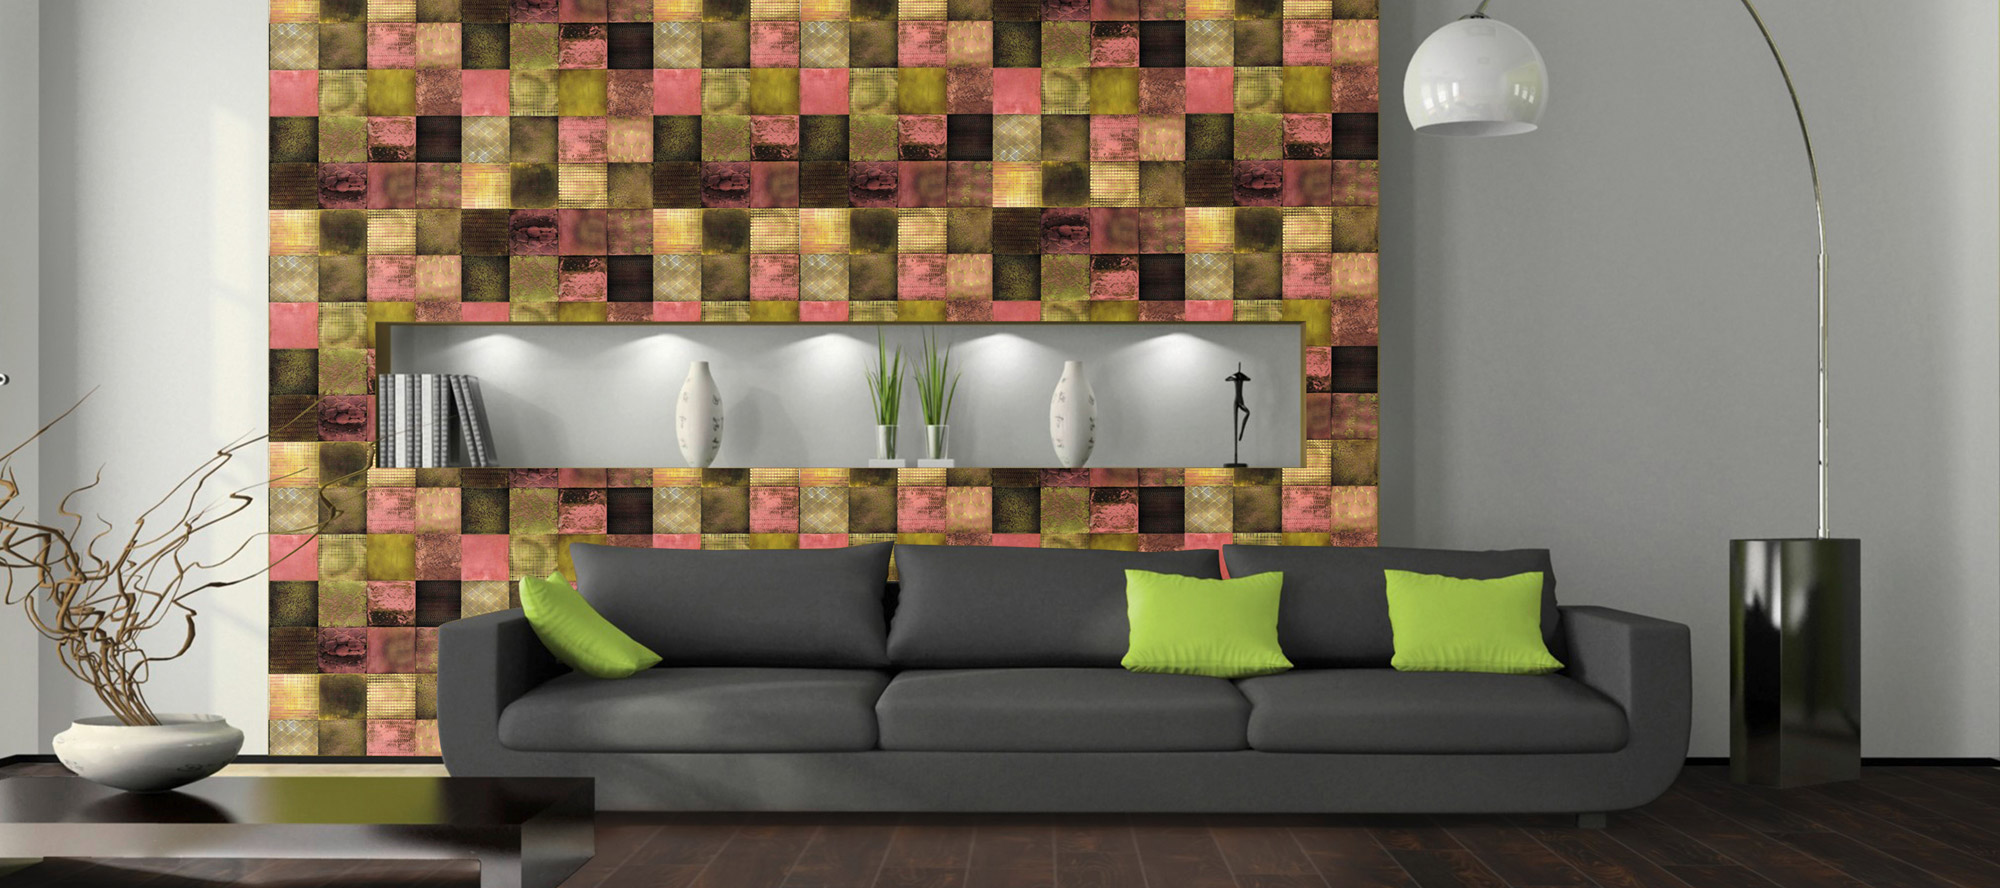 D'infinity, Materialistik Connexion Laminates For Living Room-Sundek International